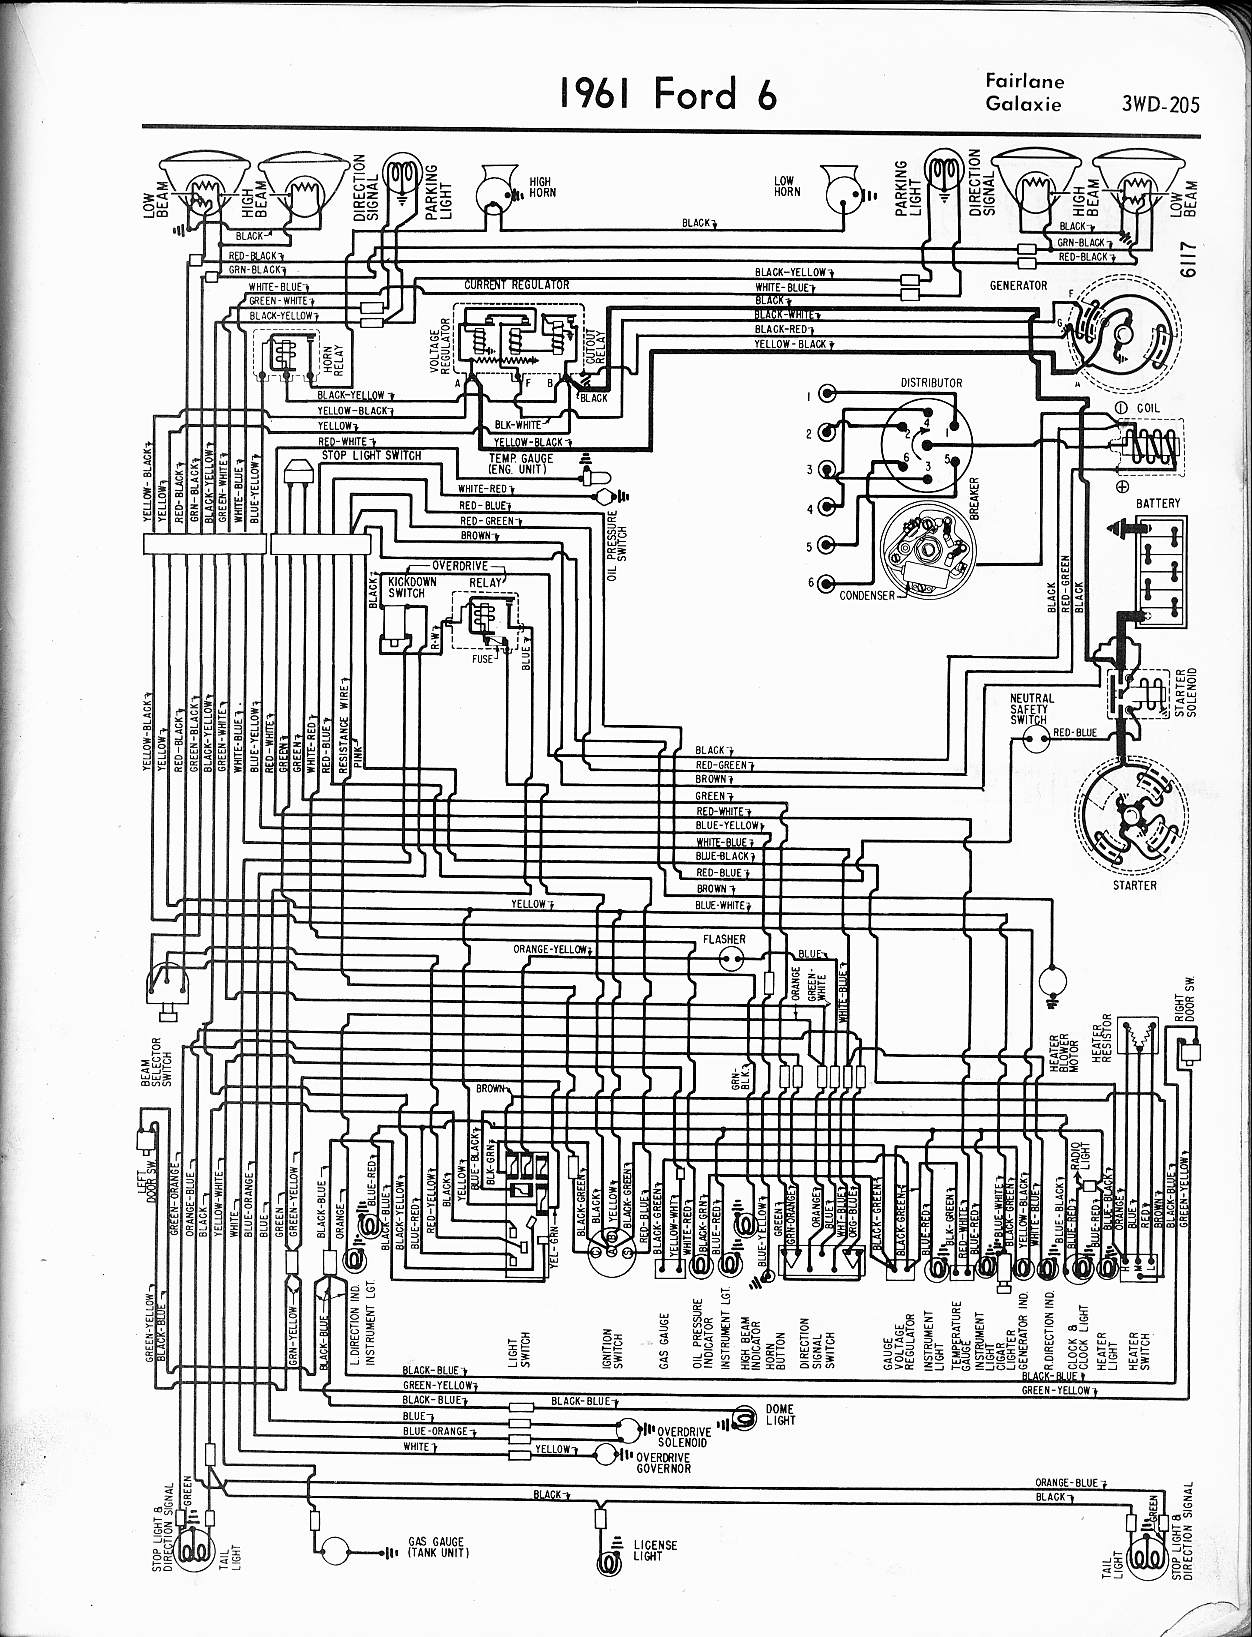 1977 Ford F 100 Wiring Diagram Library 150 1972 V8 Alternator 1965 F100 Ignition Switch Detailed Schematics 1980